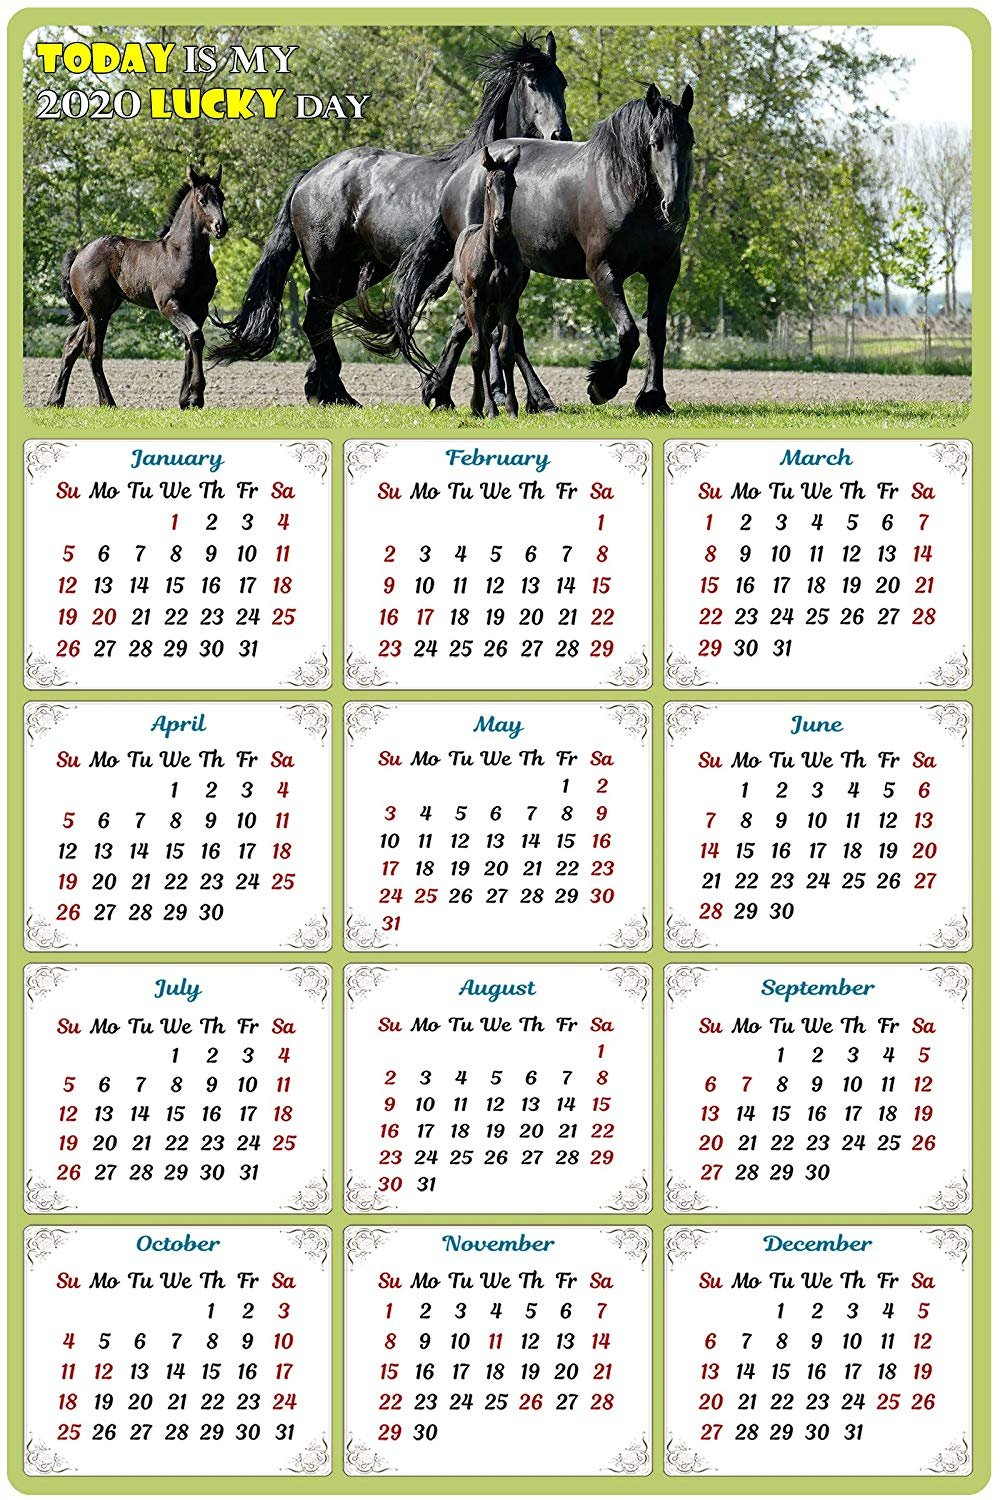 2020 Magnetic Calendar - Calendar Magnets - Today is My Lucky Day - Horses Edition #005